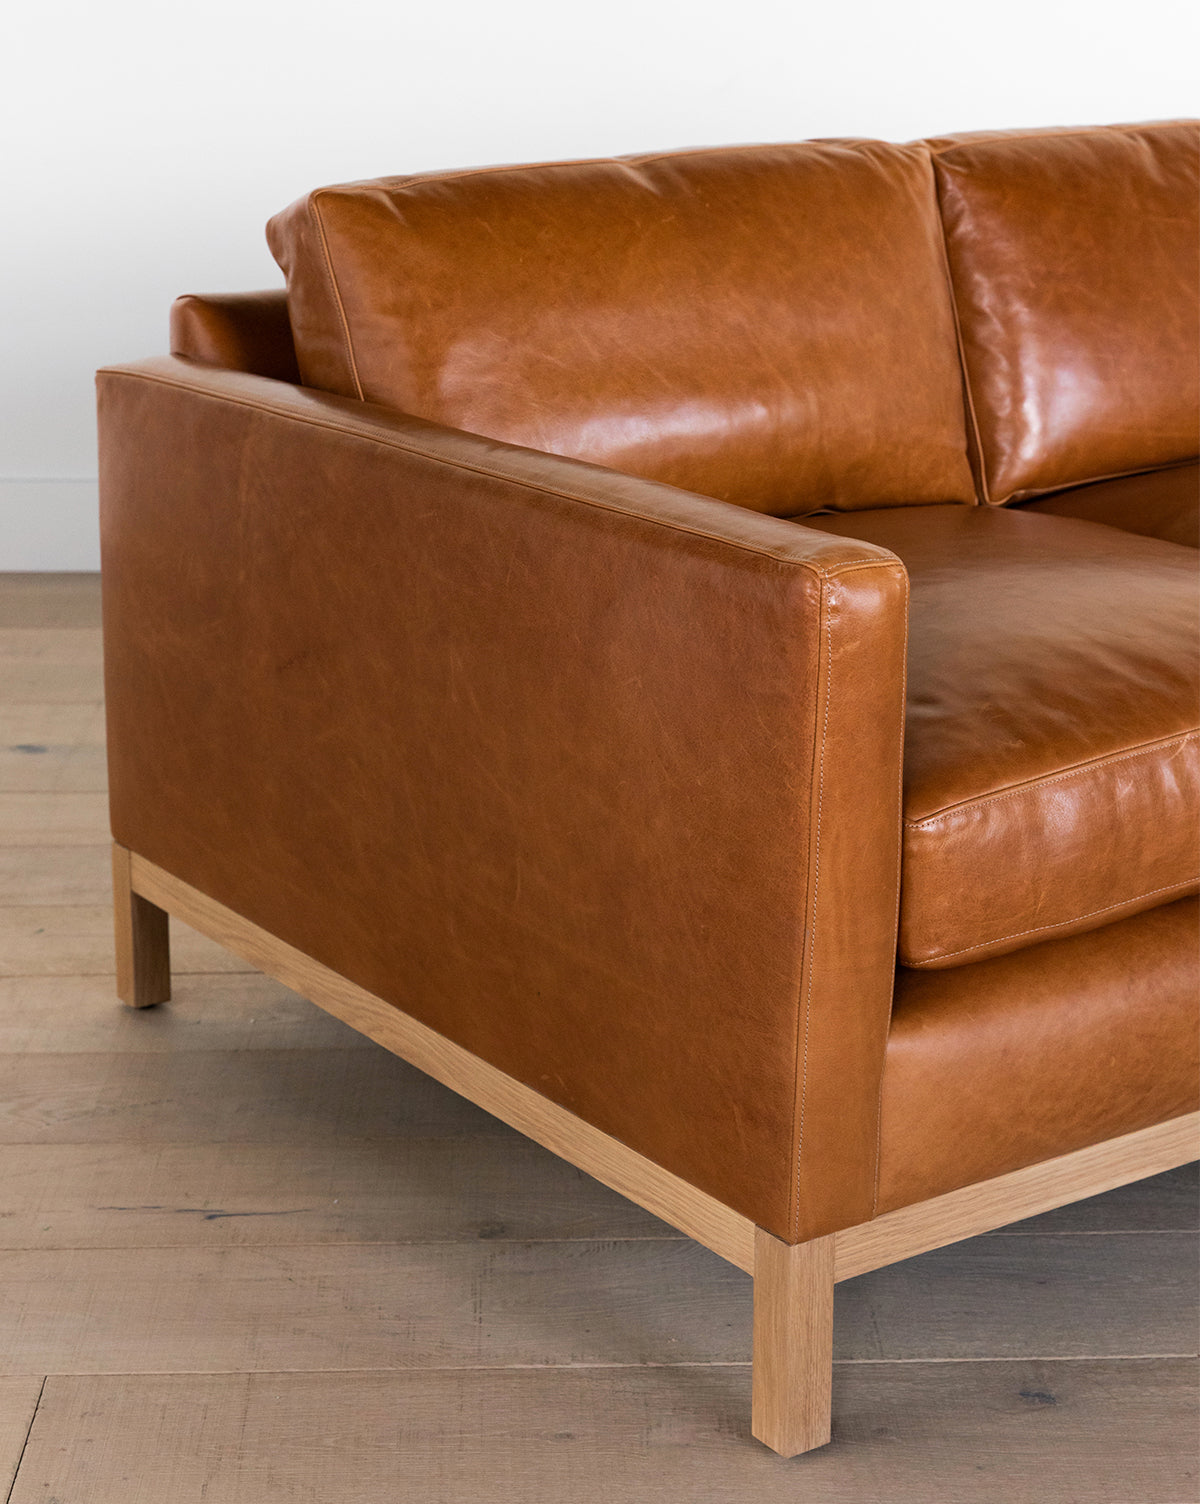 Enjoyable Buckley Leather Sofa Mcgee Co Frankydiablos Diy Chair Ideas Frankydiabloscom